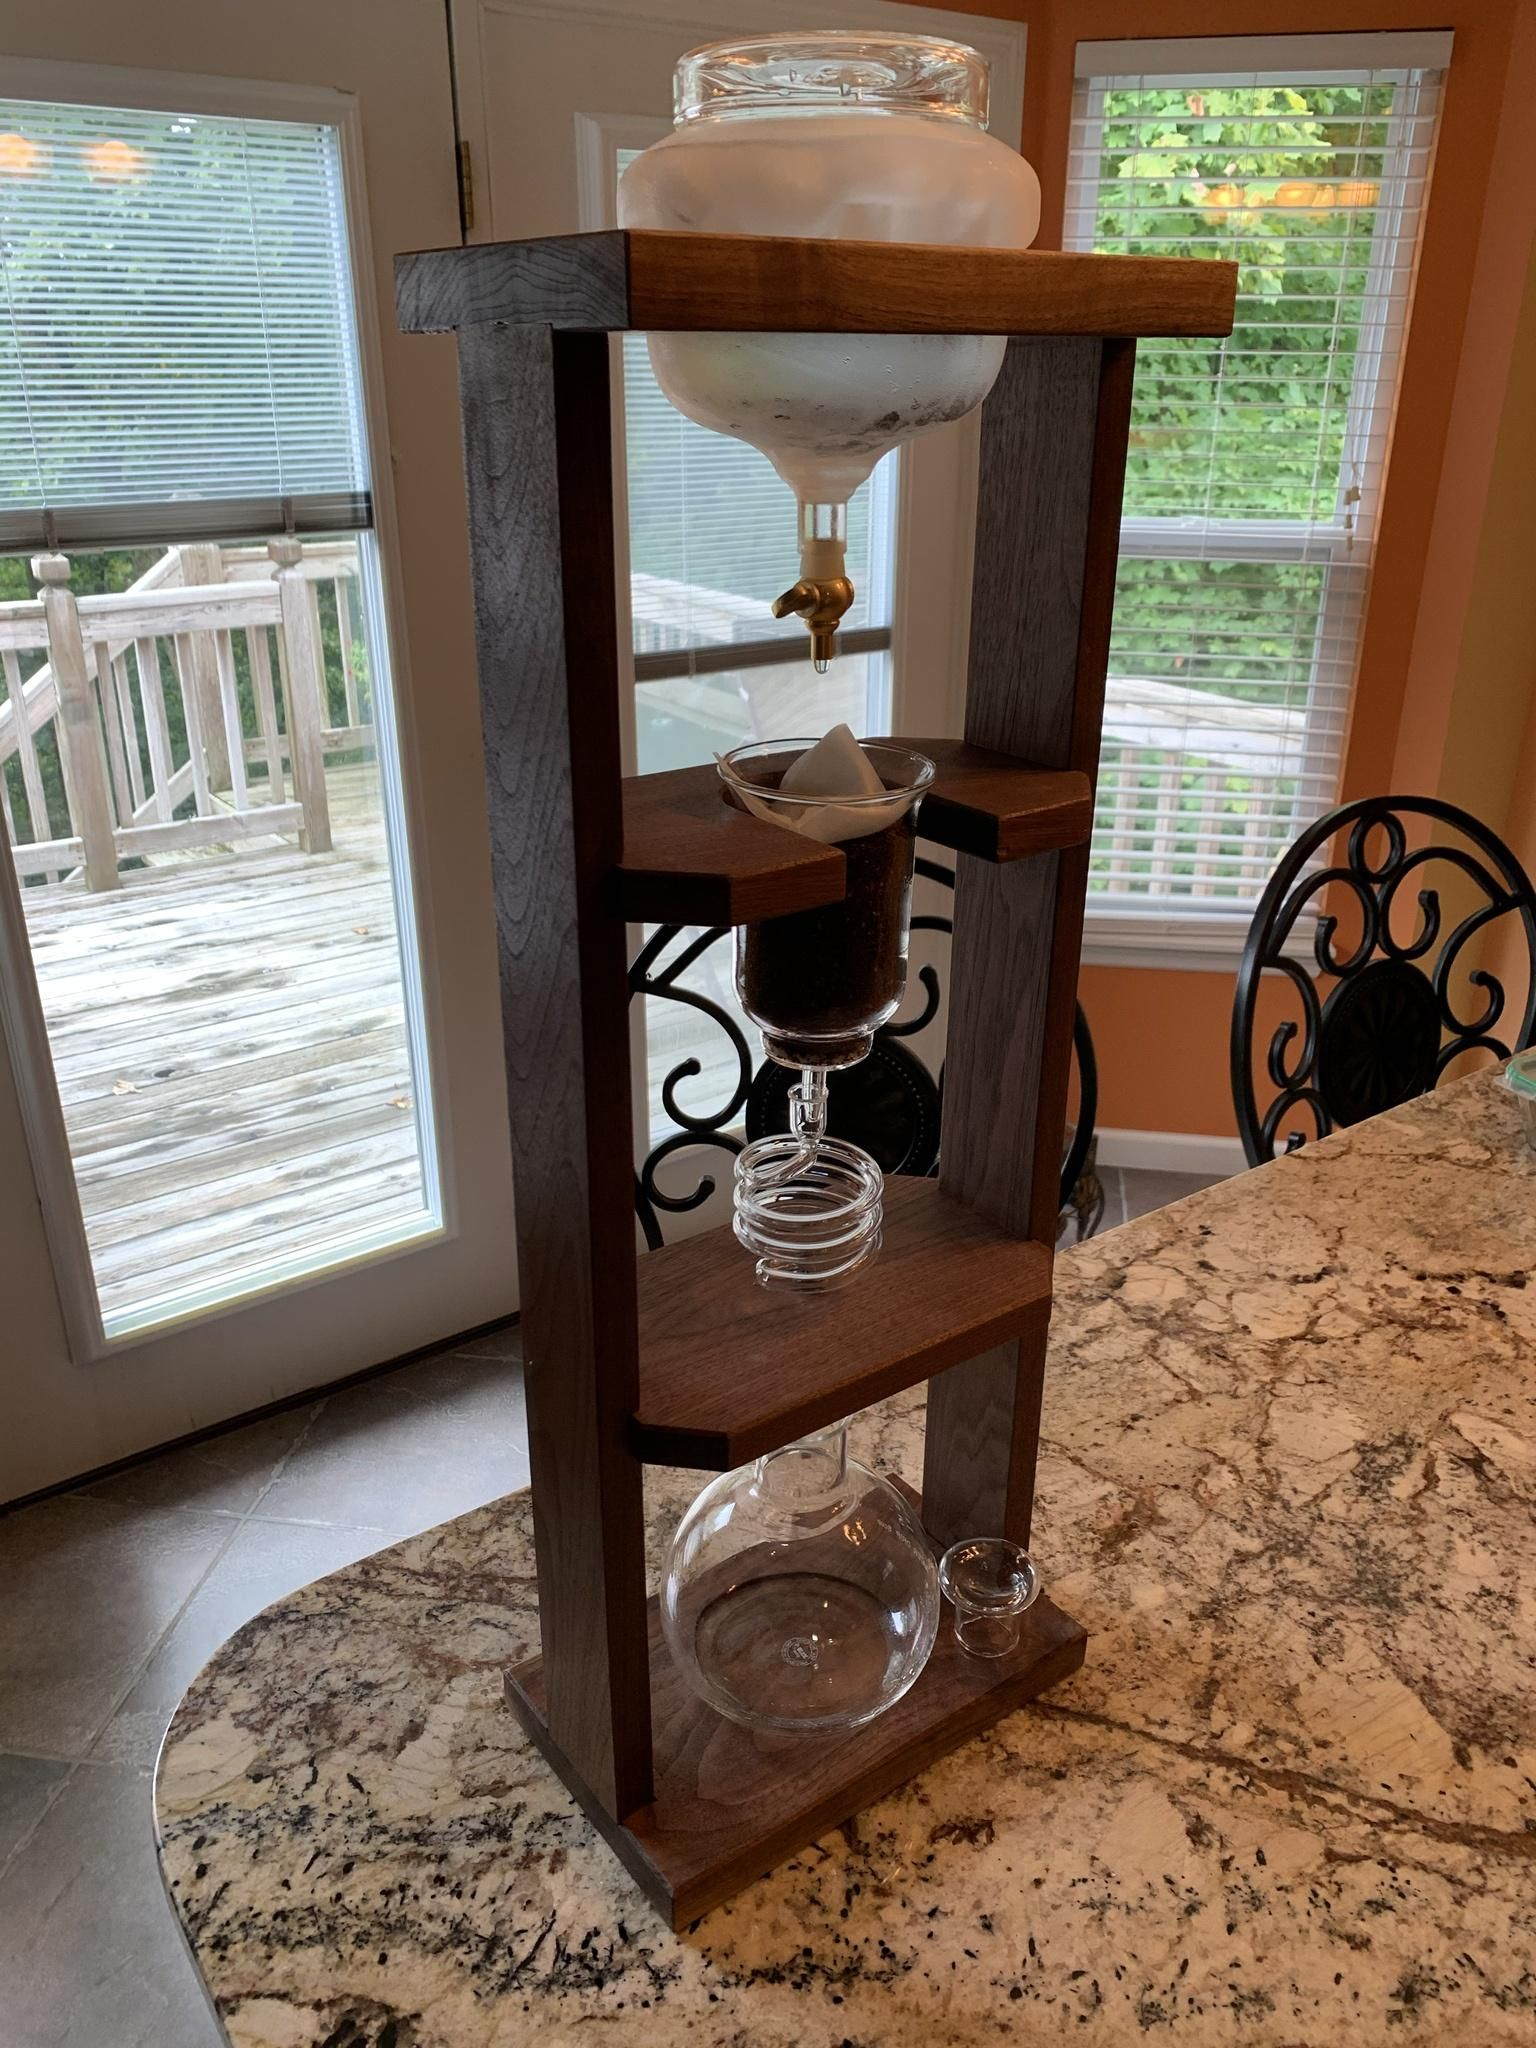 I built a Kyoto Cold Brew drip coffee tower handmade